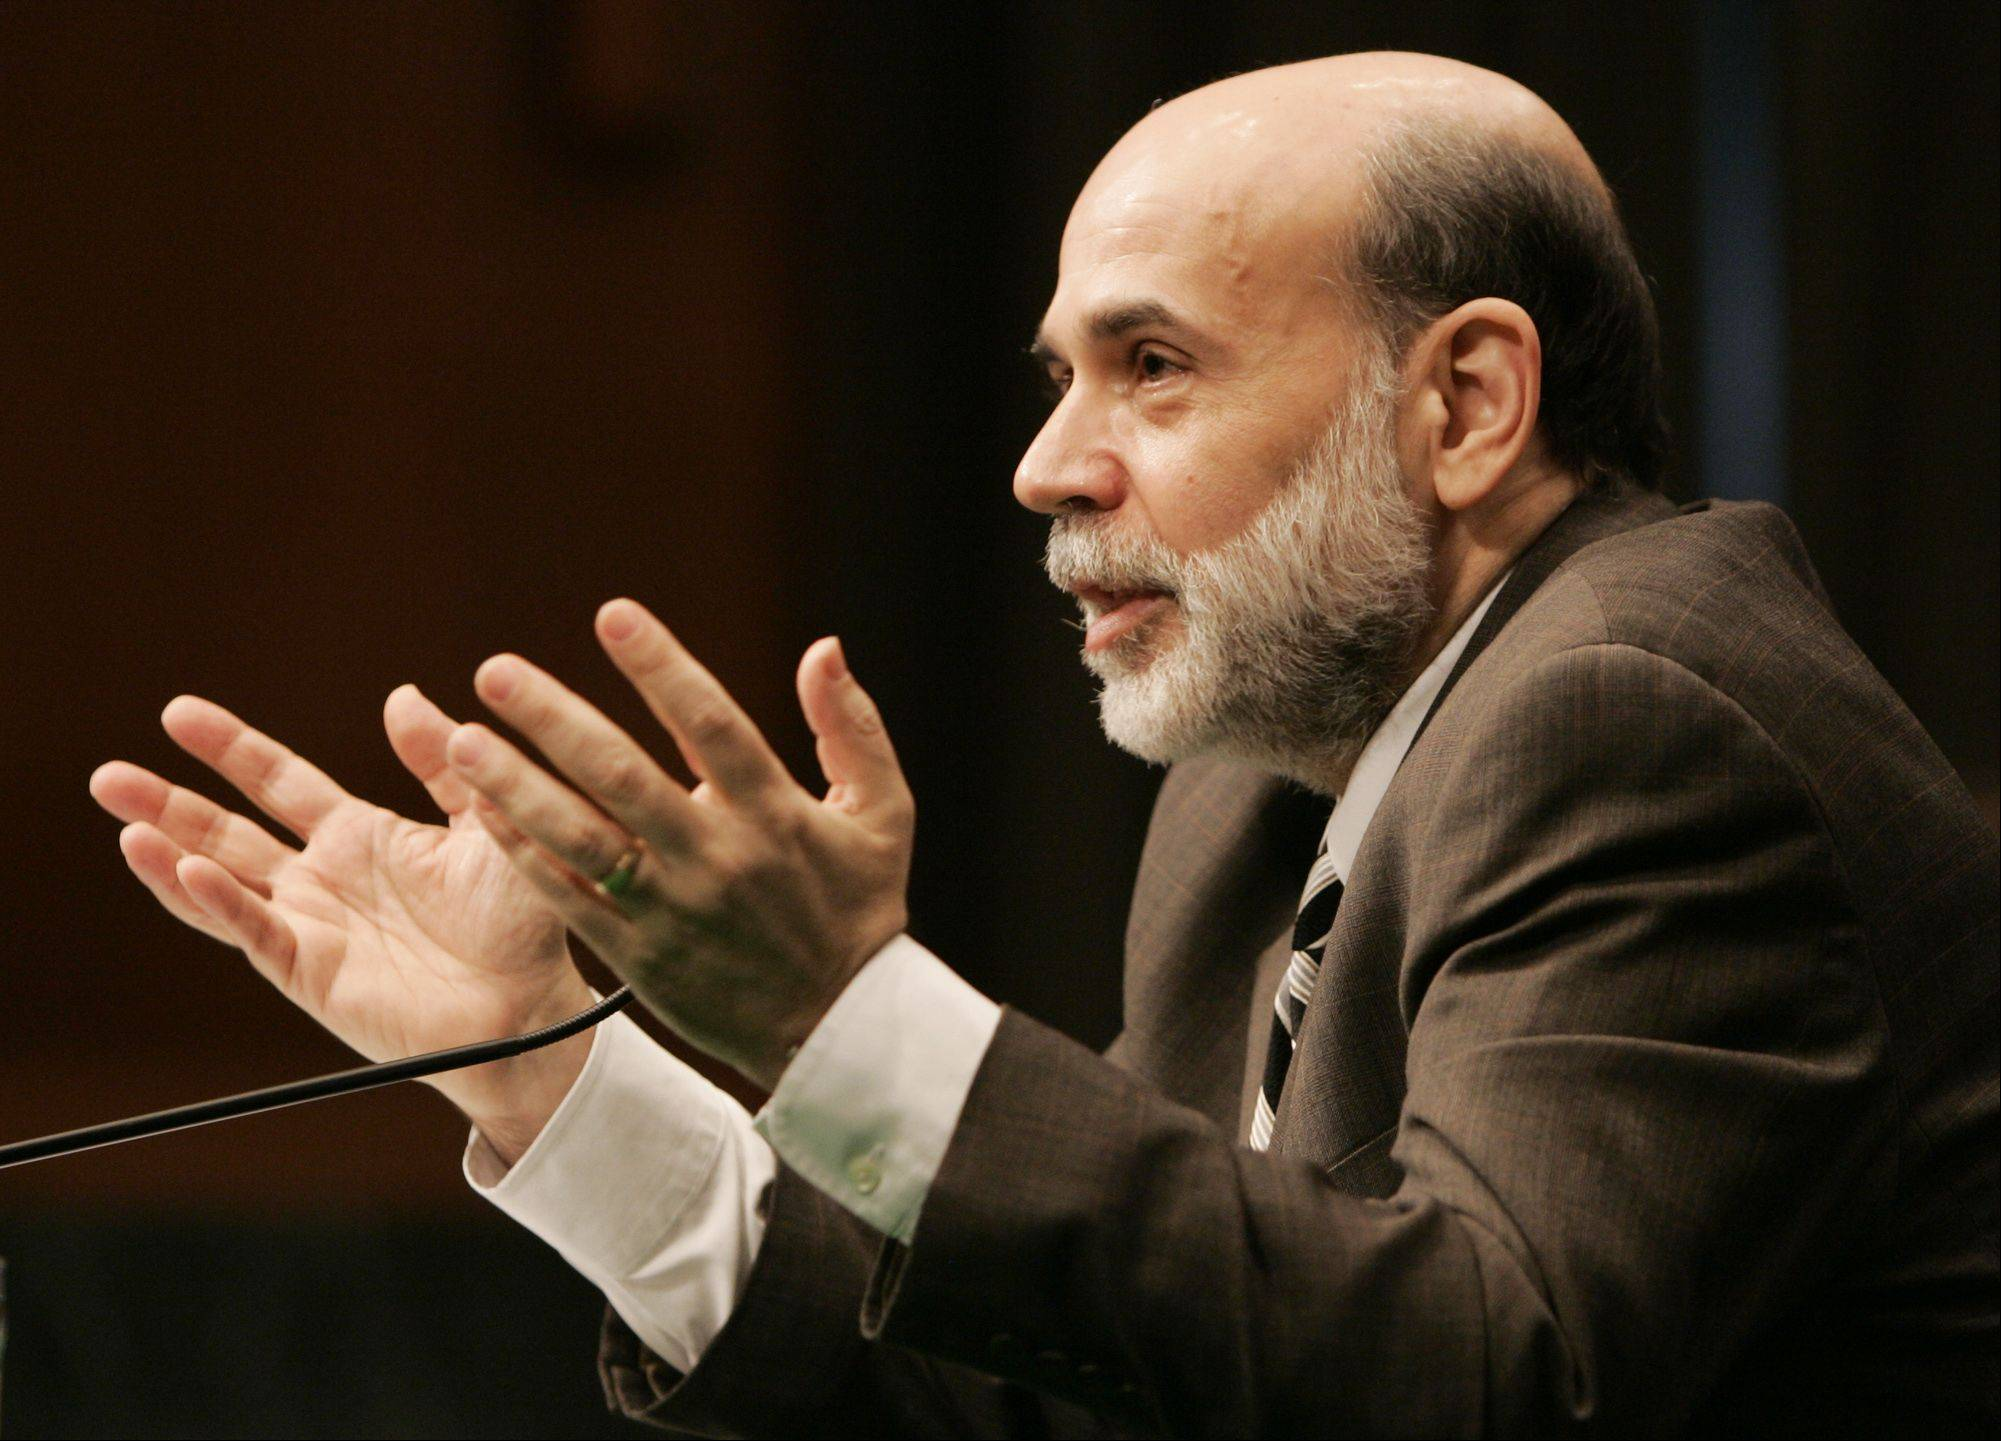 Chairman Ben Bernanke said Monday that the Federal Reserve's low-interest-rate policies are helping to boost growth around the world and have created markets for products made in developing nations.